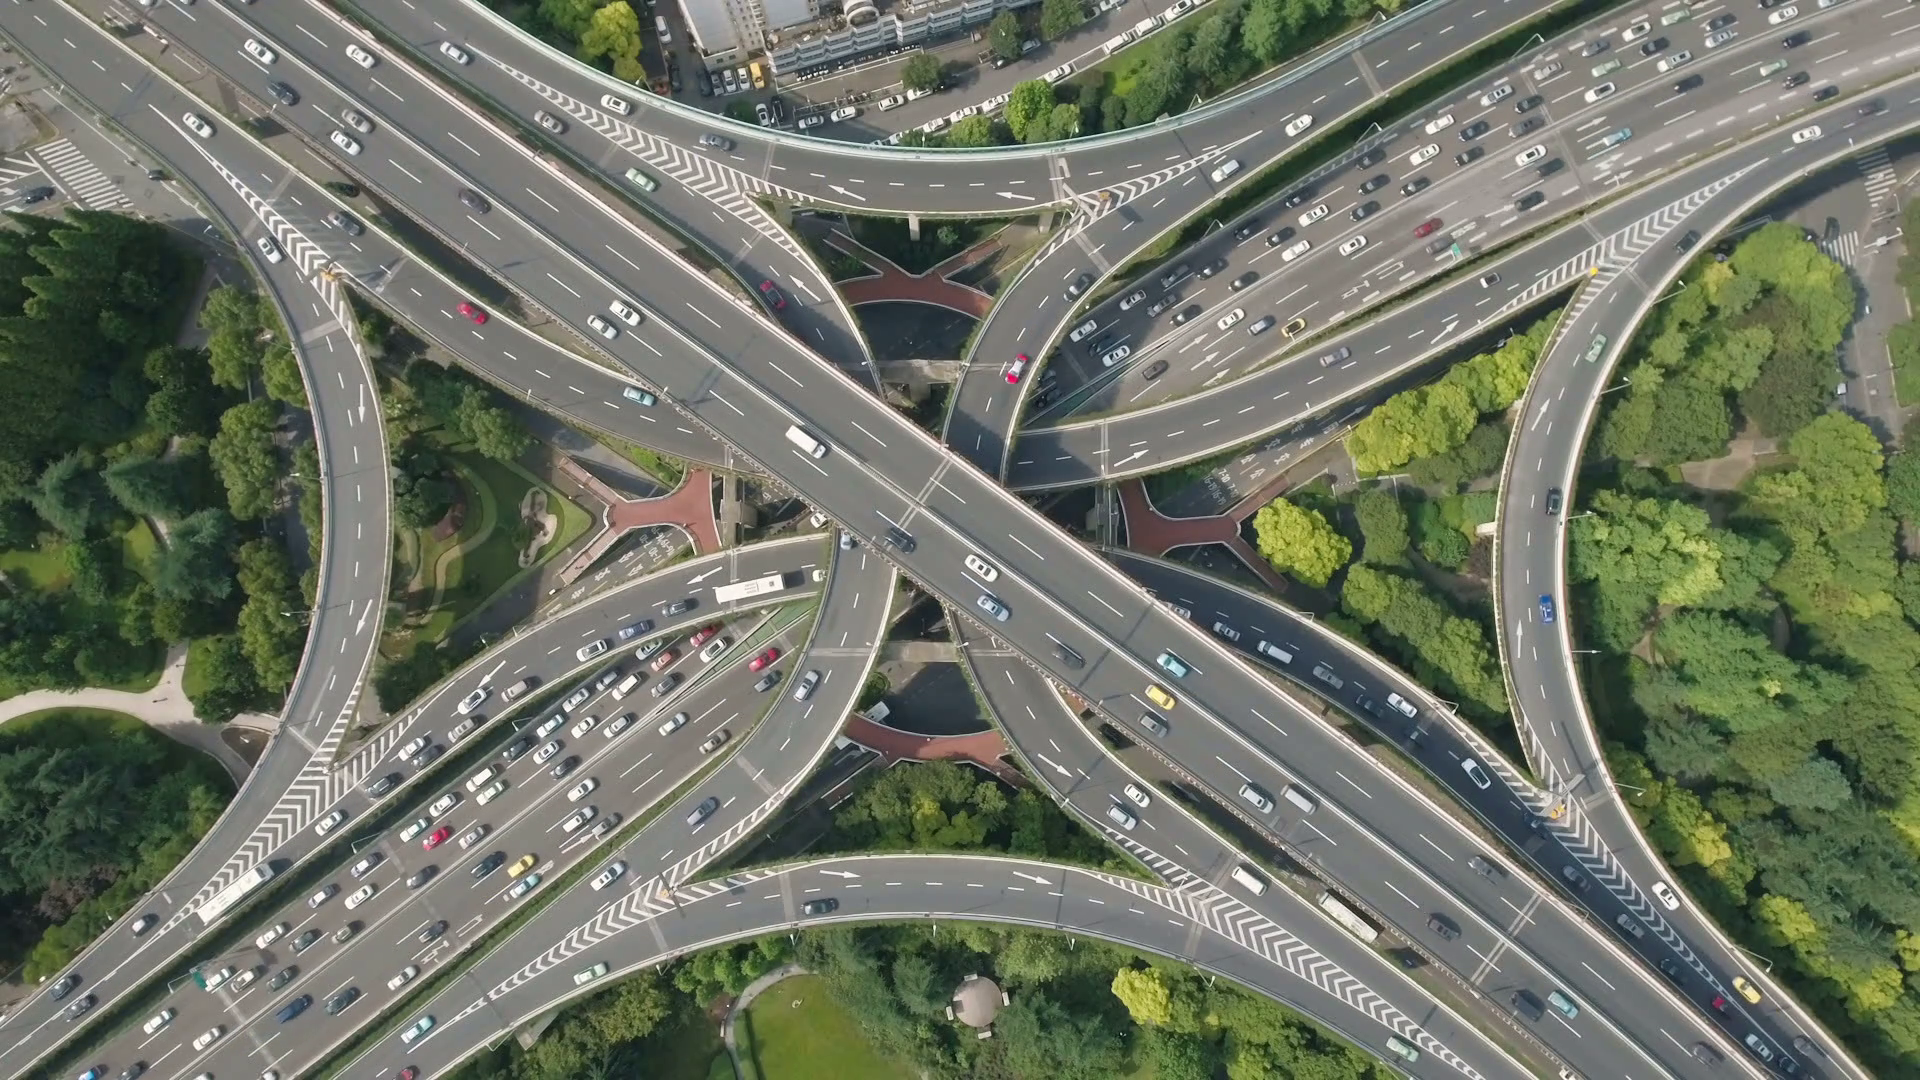 abstract-aerial-drone-shot-of-traffic-driving-over-the-beautiful-yanan-elevated-highway-a-busy-intersection-and-convergence-of-roads-in-shanghai-city-urban-china_stec5e8h6_thumbnail-full01.png